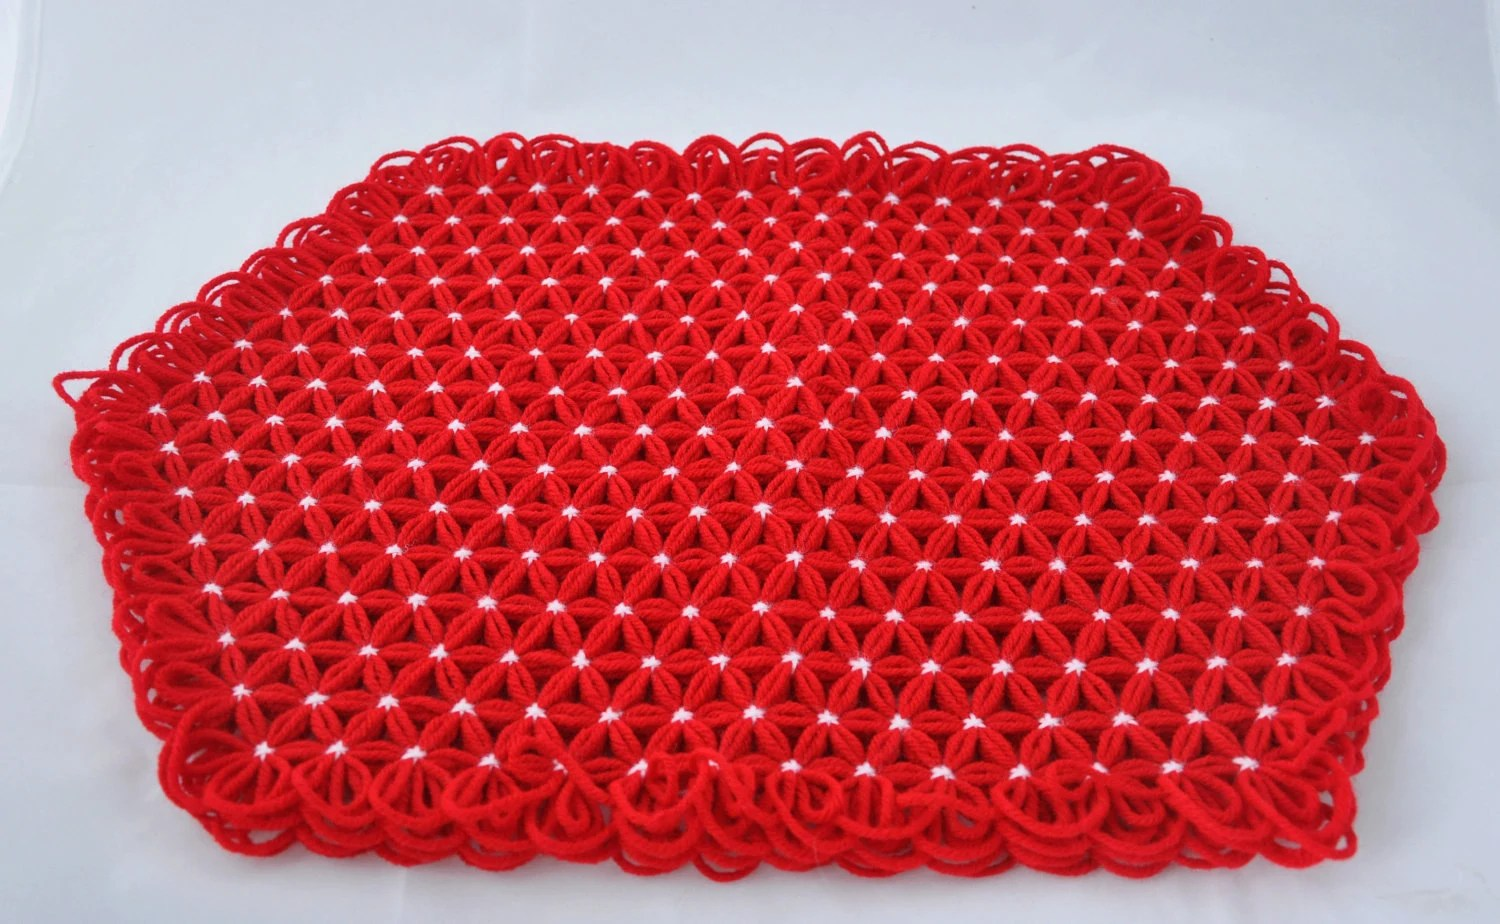 Placemats in 4 Layers of Bright Red Yarn with White Ties - Set of Four